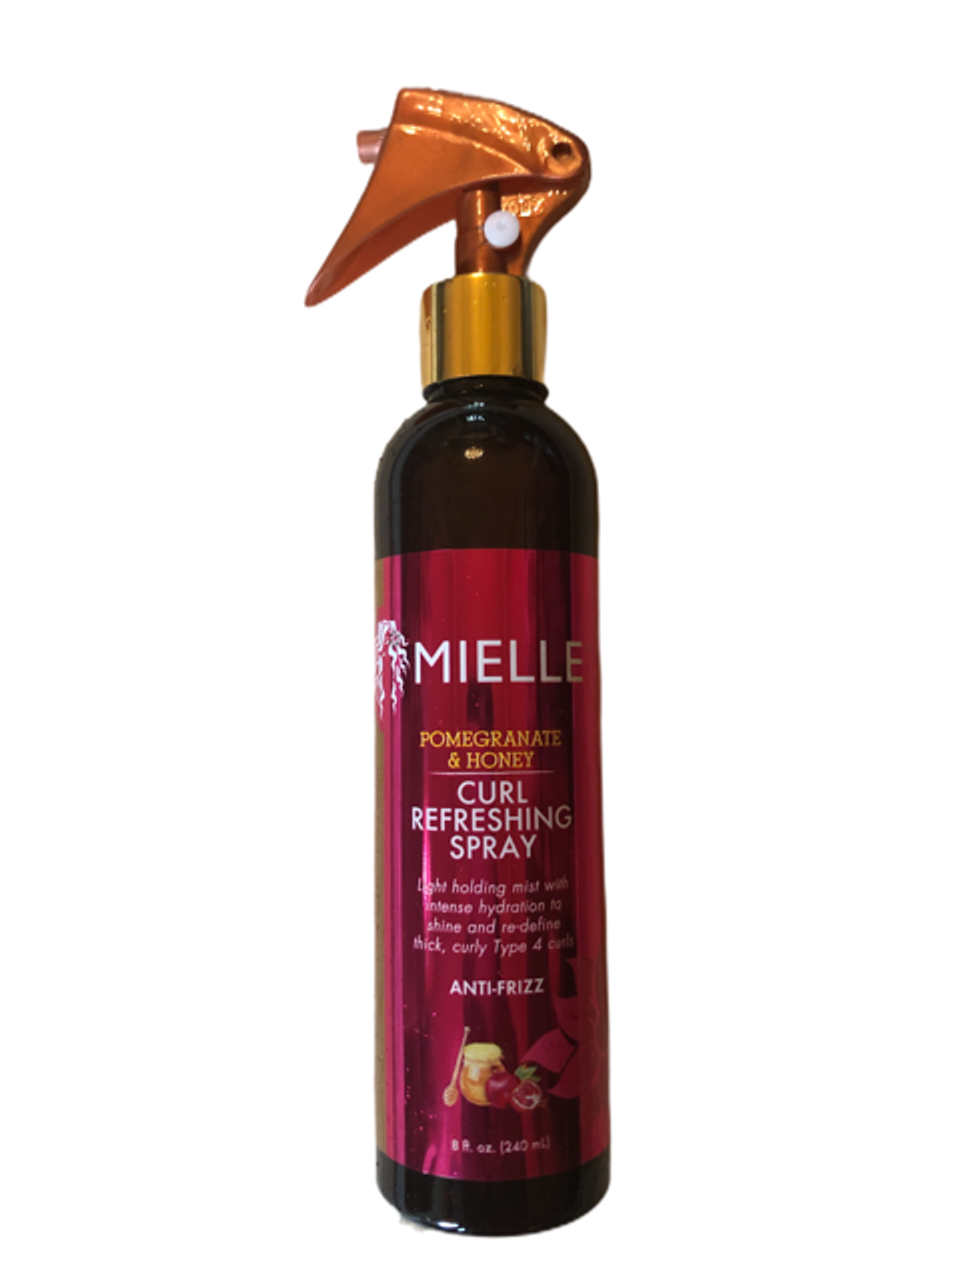 Mielle Pomegranate & Honey Curl Refreshing Spray 8 oz.